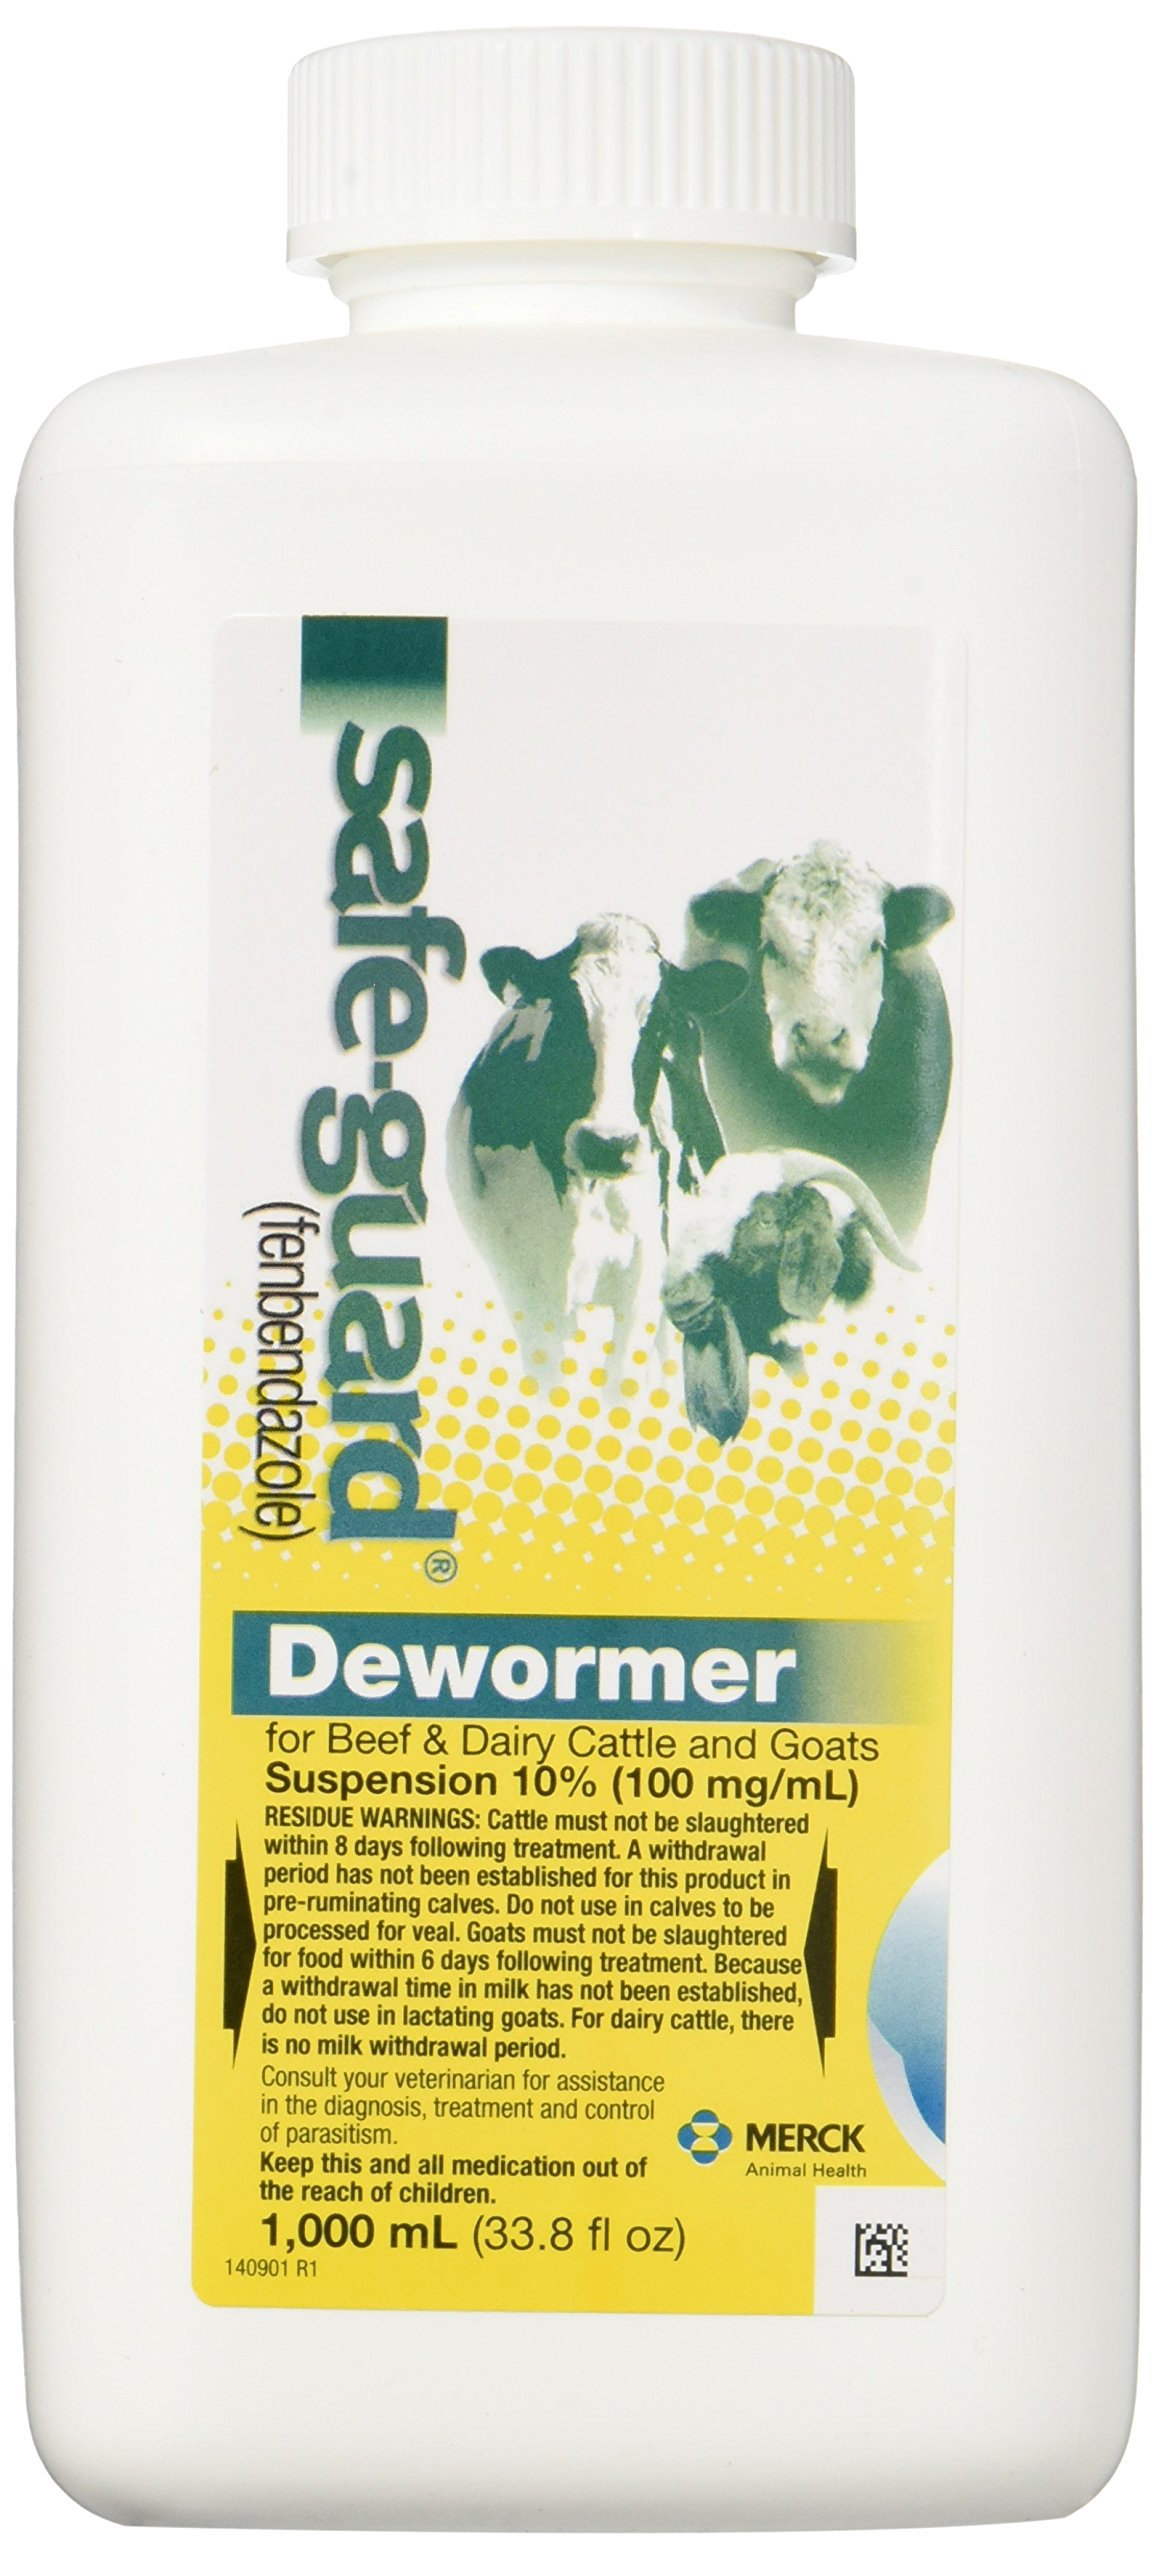 Safe-Guard Dewormer Suspension for Beef, Dairy Cattle and Goats, 1000ml